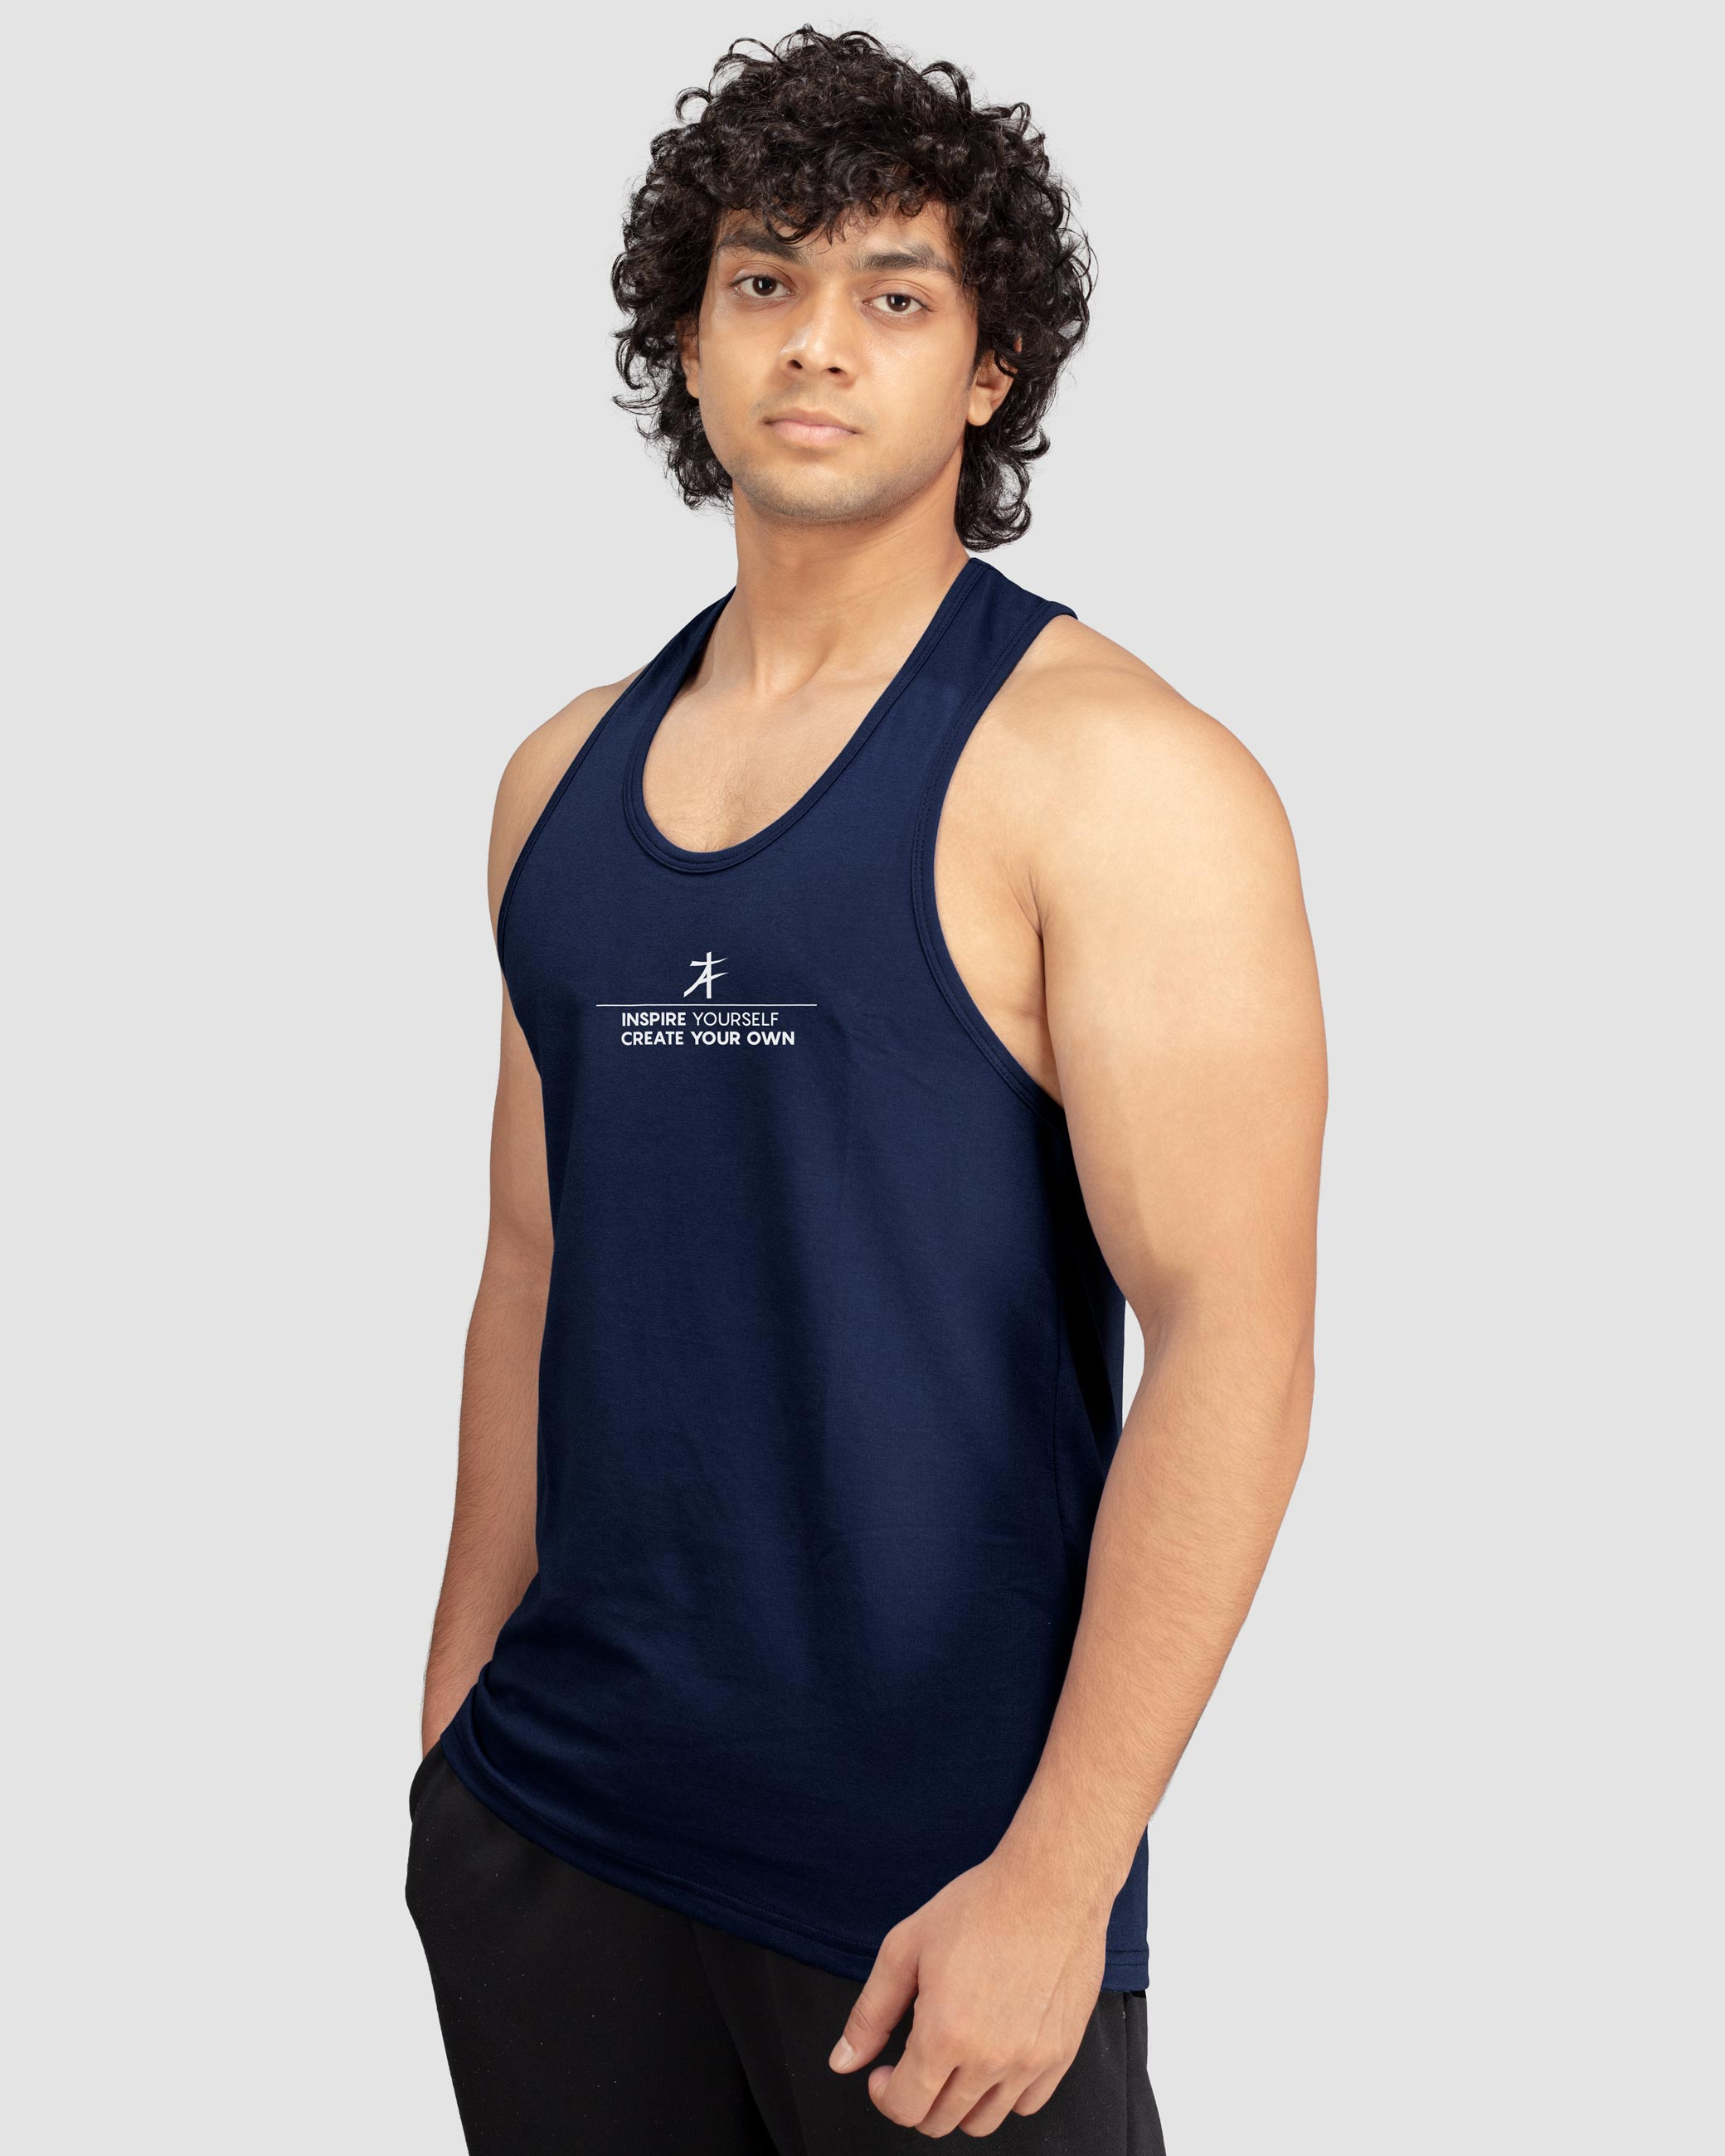 Flex Leisure Wefty Stringers(Navy Blue) Athflex